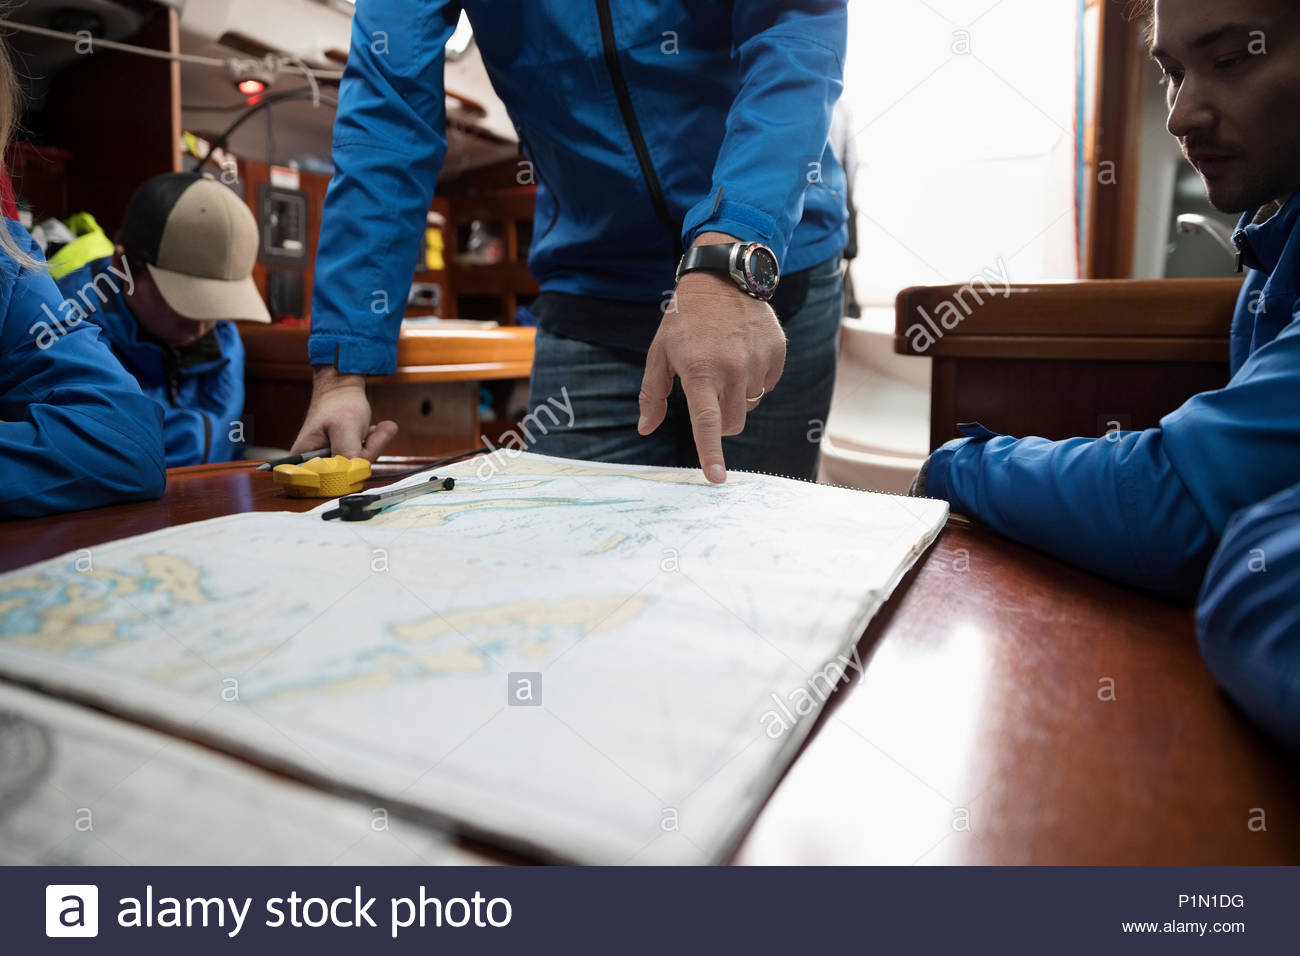 Sailing team plotting course at map on sailboat - Stock Image